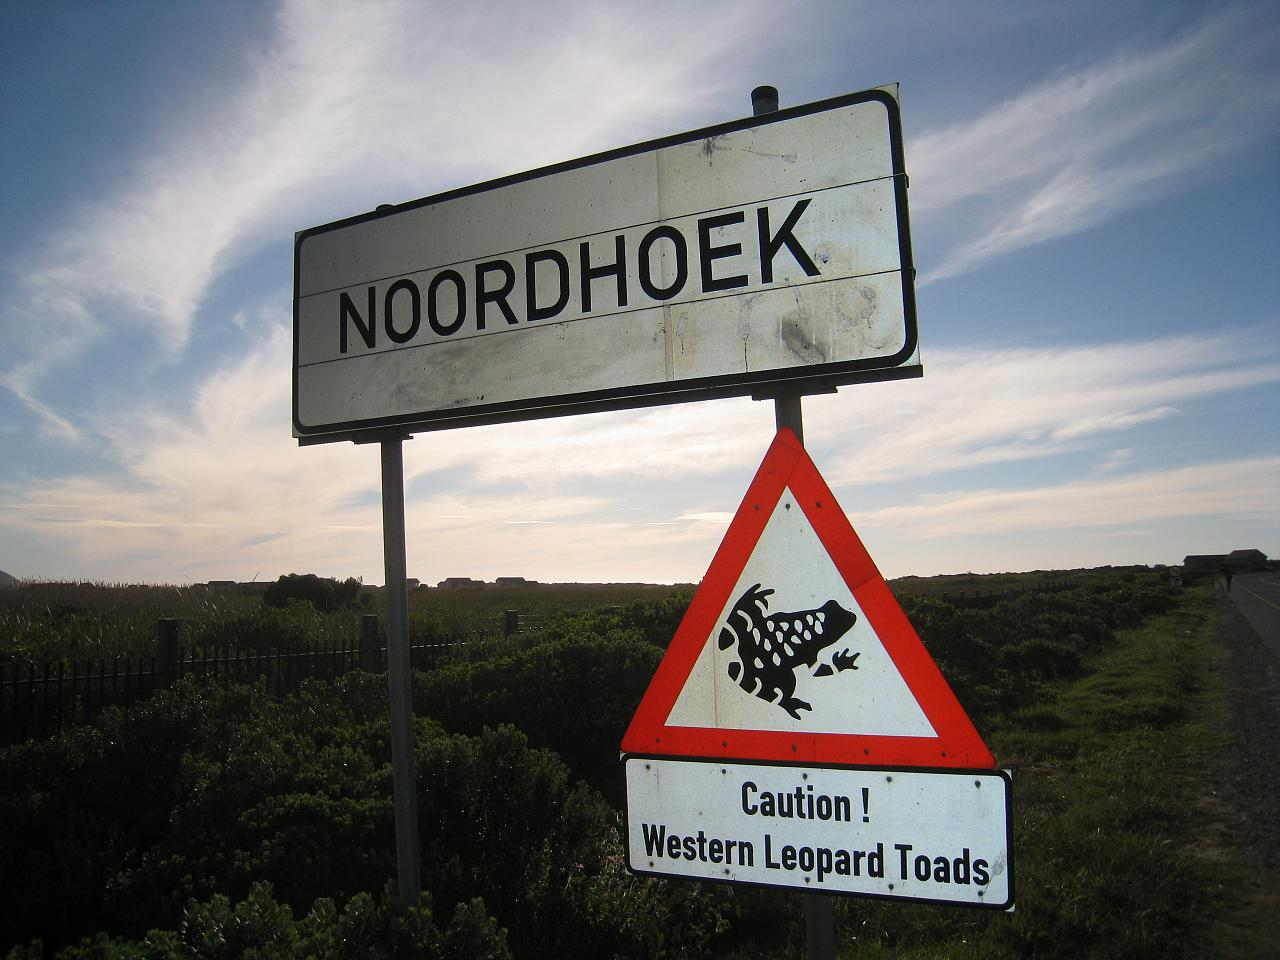 Caution: Western Leopard Toads - near Cape Town